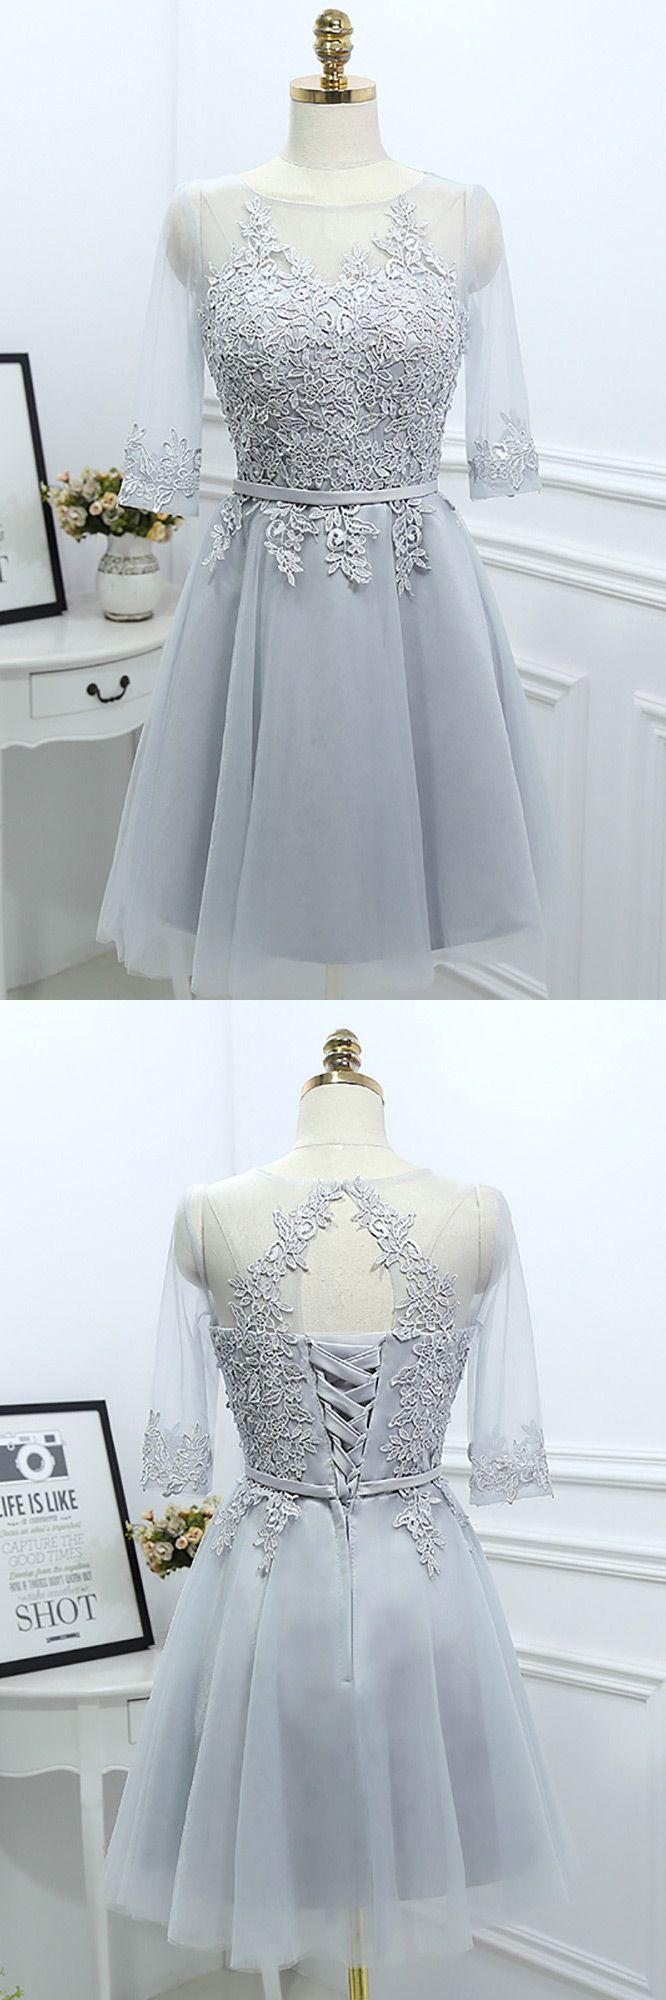 Grey Lace Short Reception Party Dress With Illusion Neck Sleeves ...